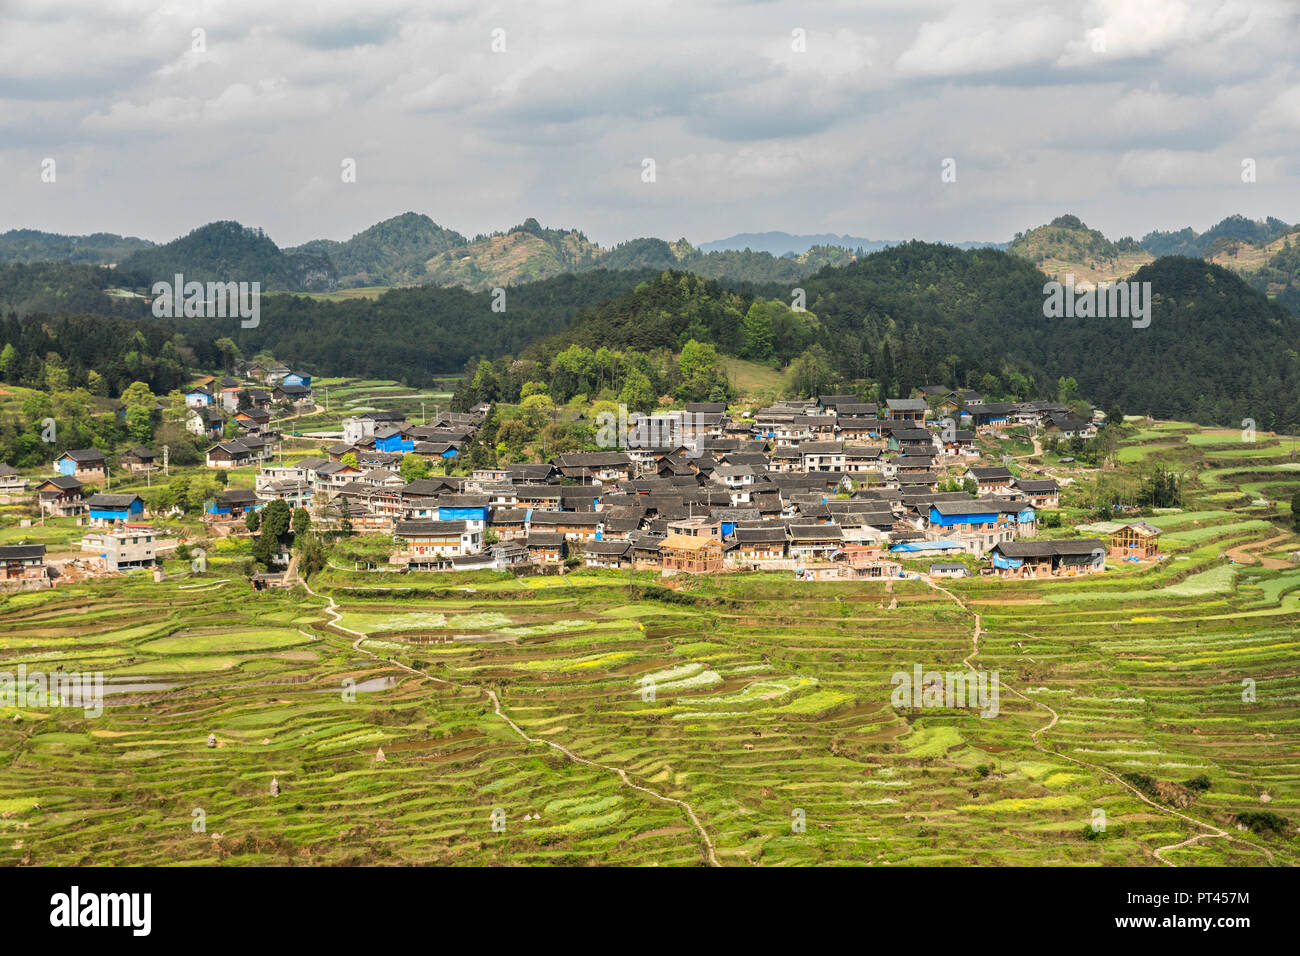 Rice terraces, Gaoyao, Guizhou, China Stock Photo